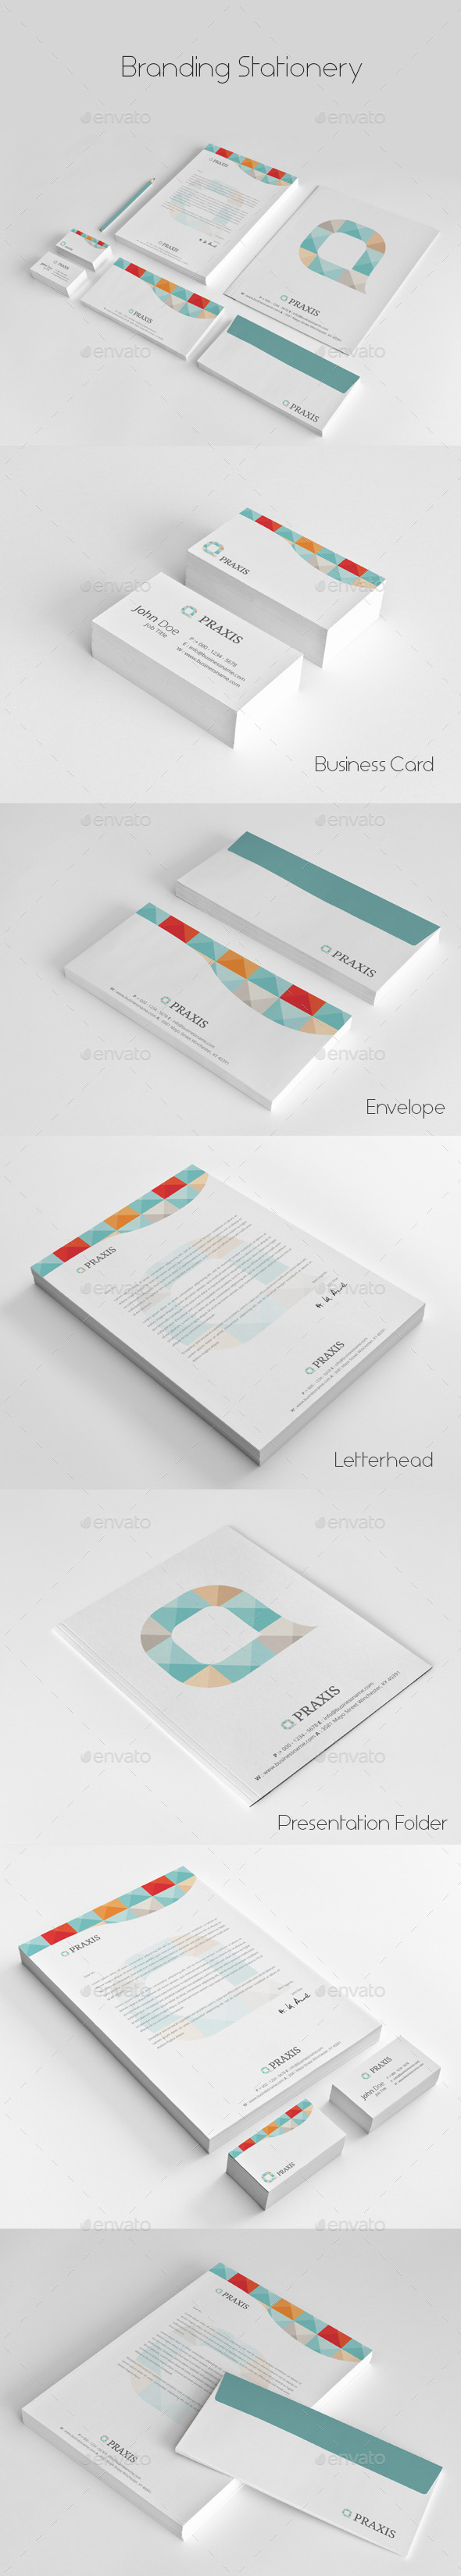 GraphicRiver Branding Stationery 9940601